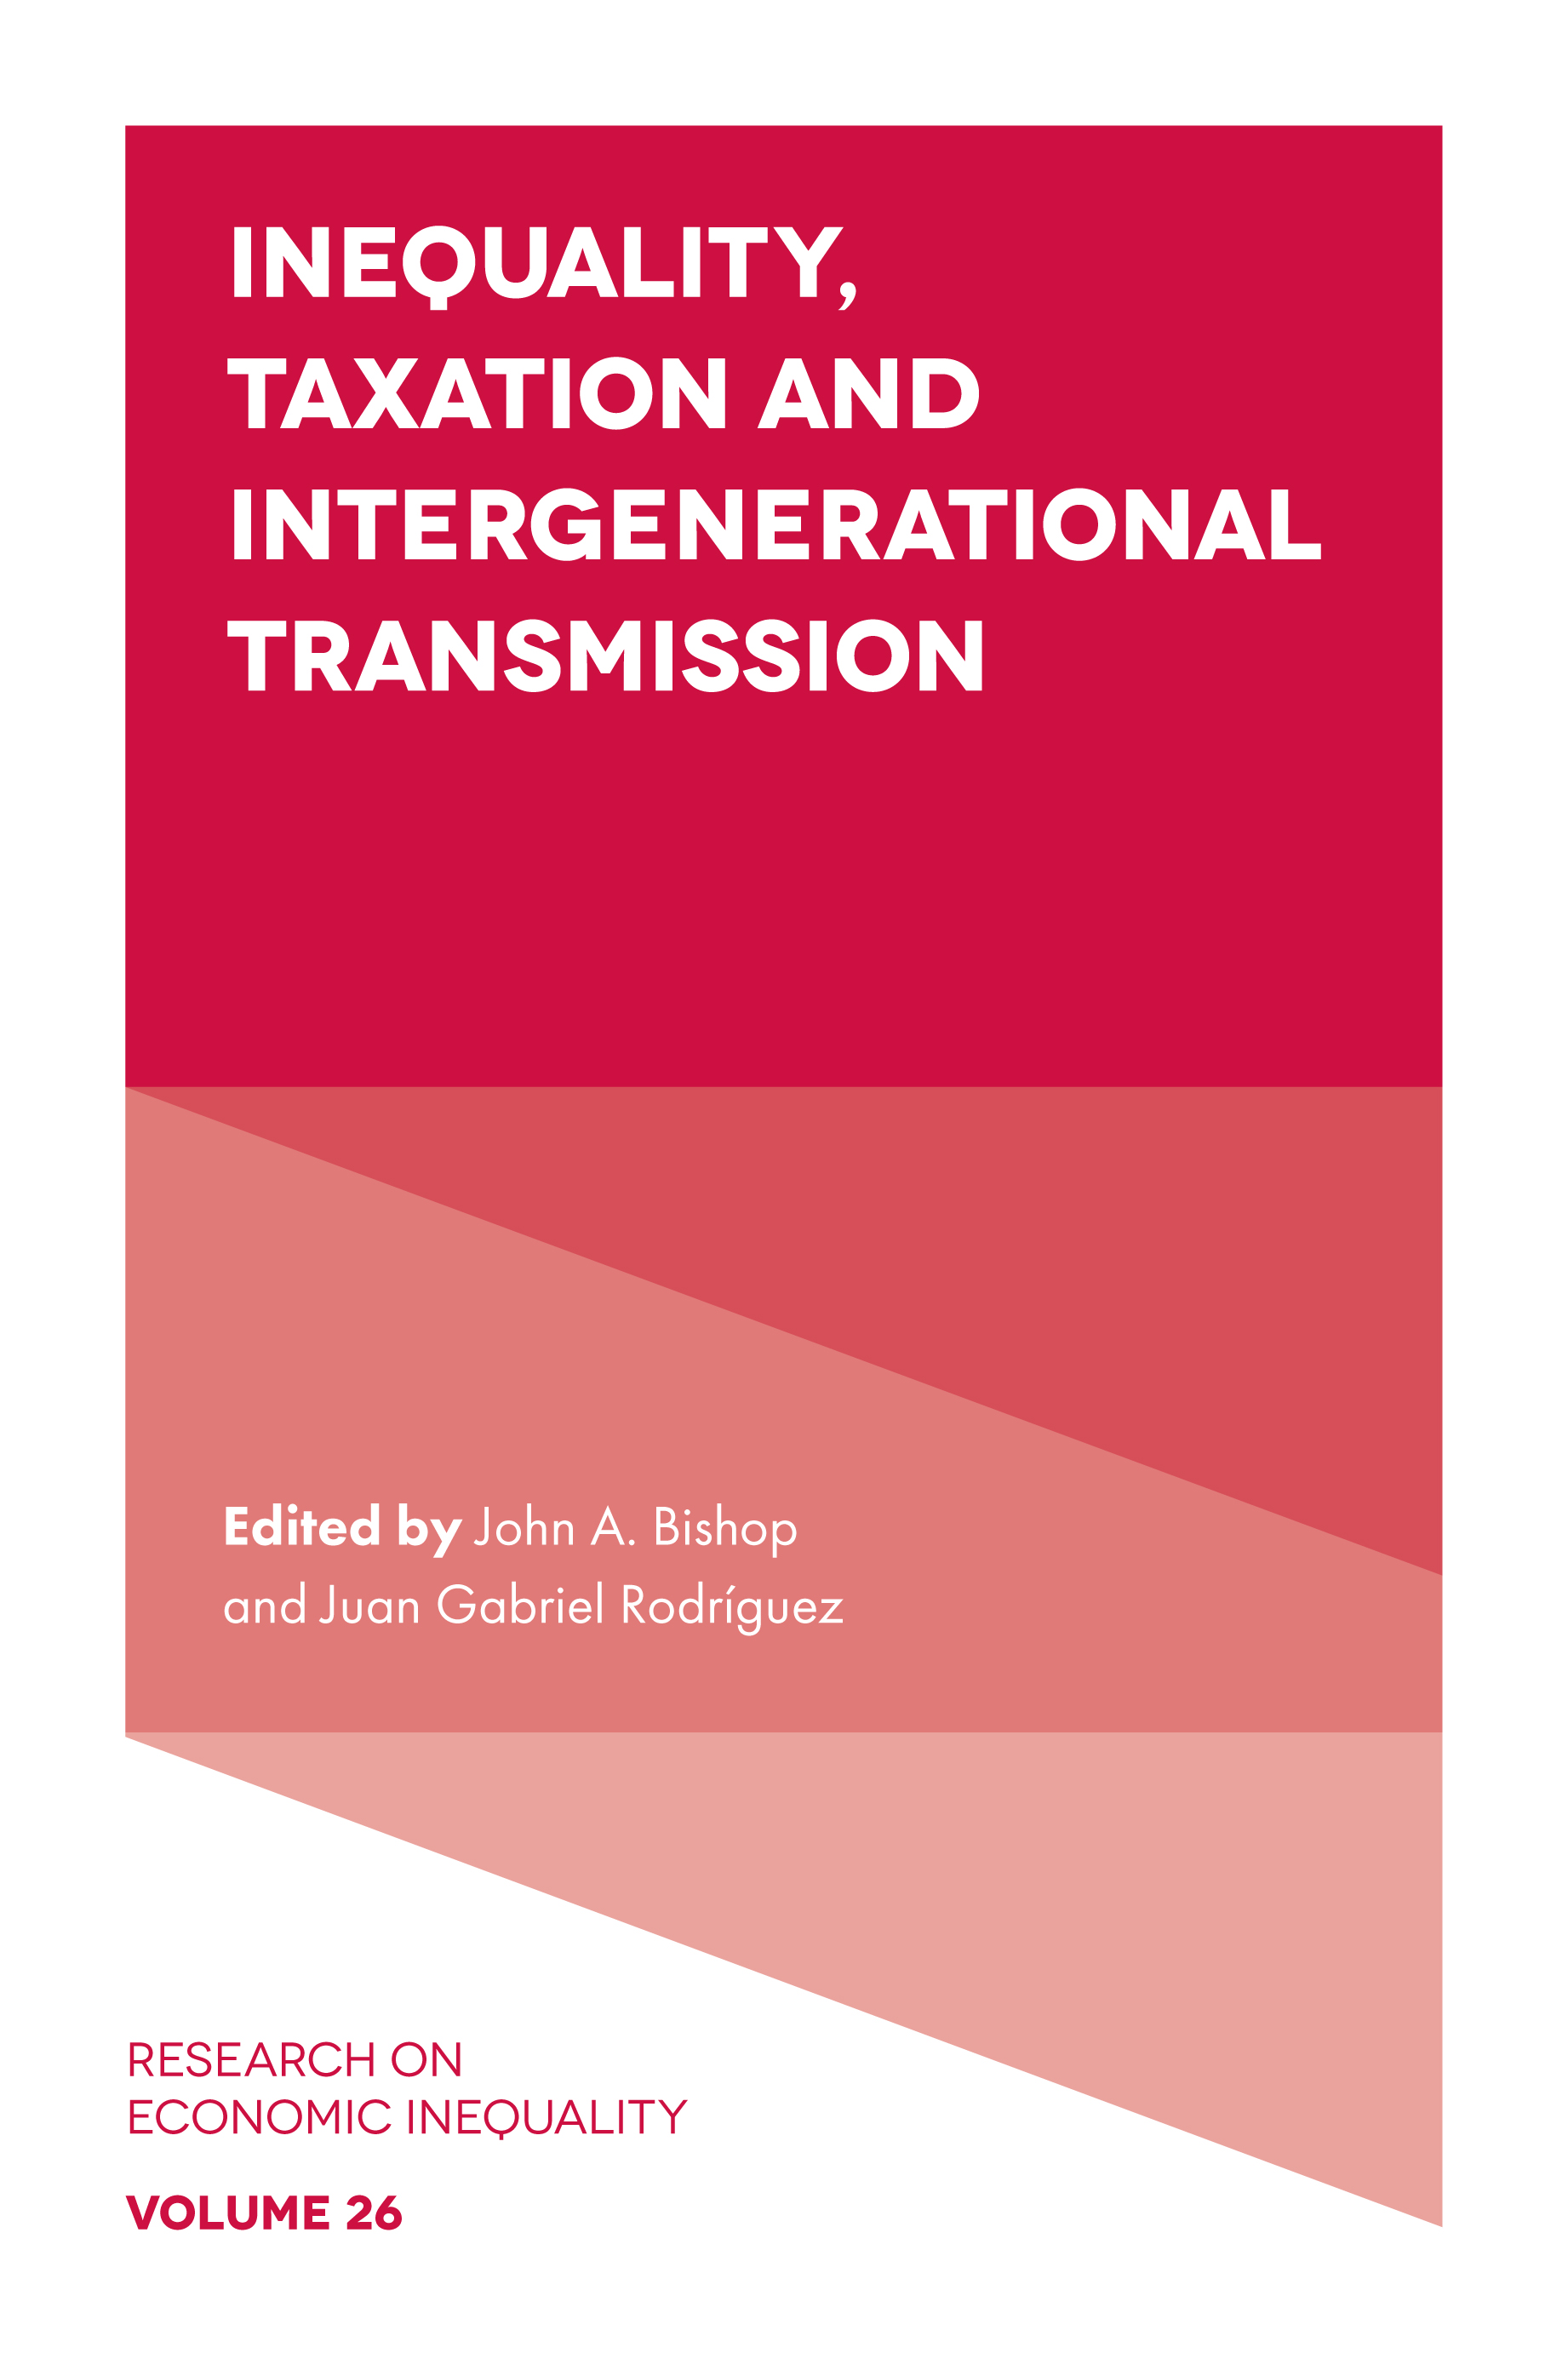 Book cover for Inequality, Taxation, and Intergenerational Transmission a book by John A. Bishop, Juan Gabriel Rodríguez